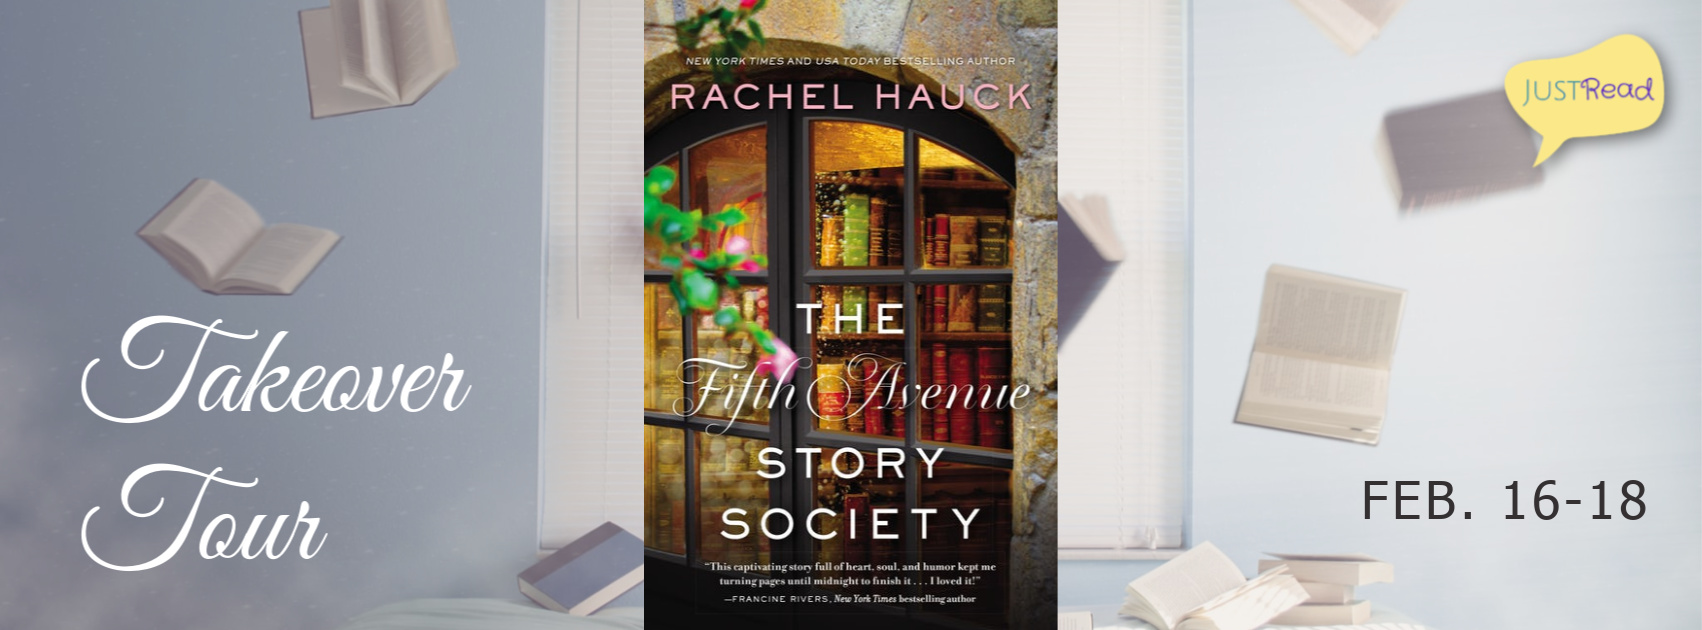 Welcome to The Fifth Avenue Story Society Takeover Tour!